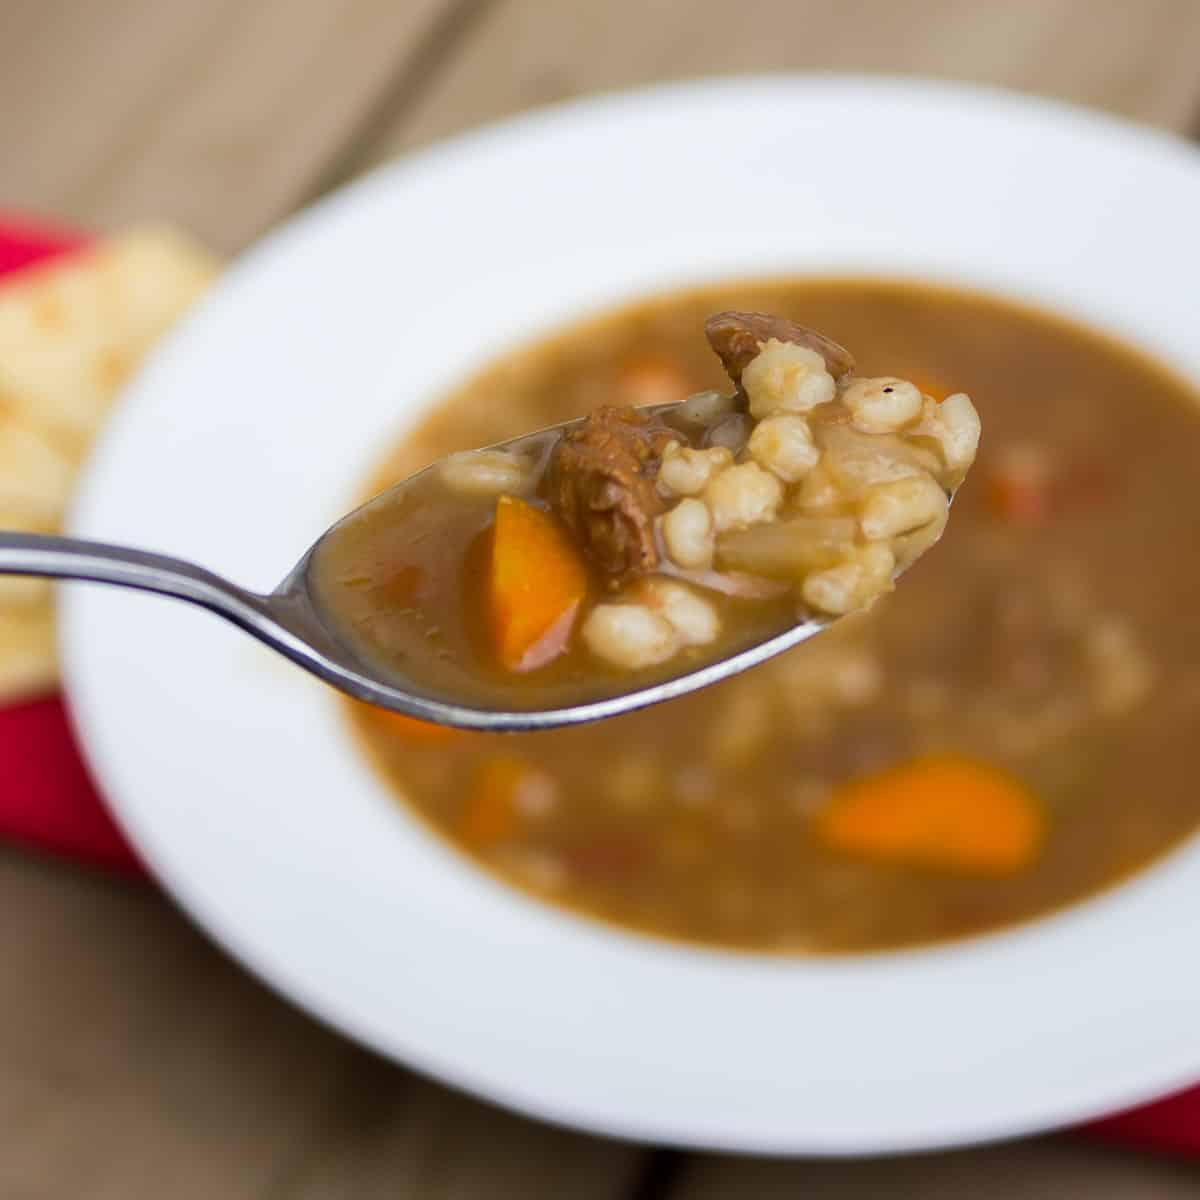 A spoonful of hearty soup that is perfect for a cold winter day.